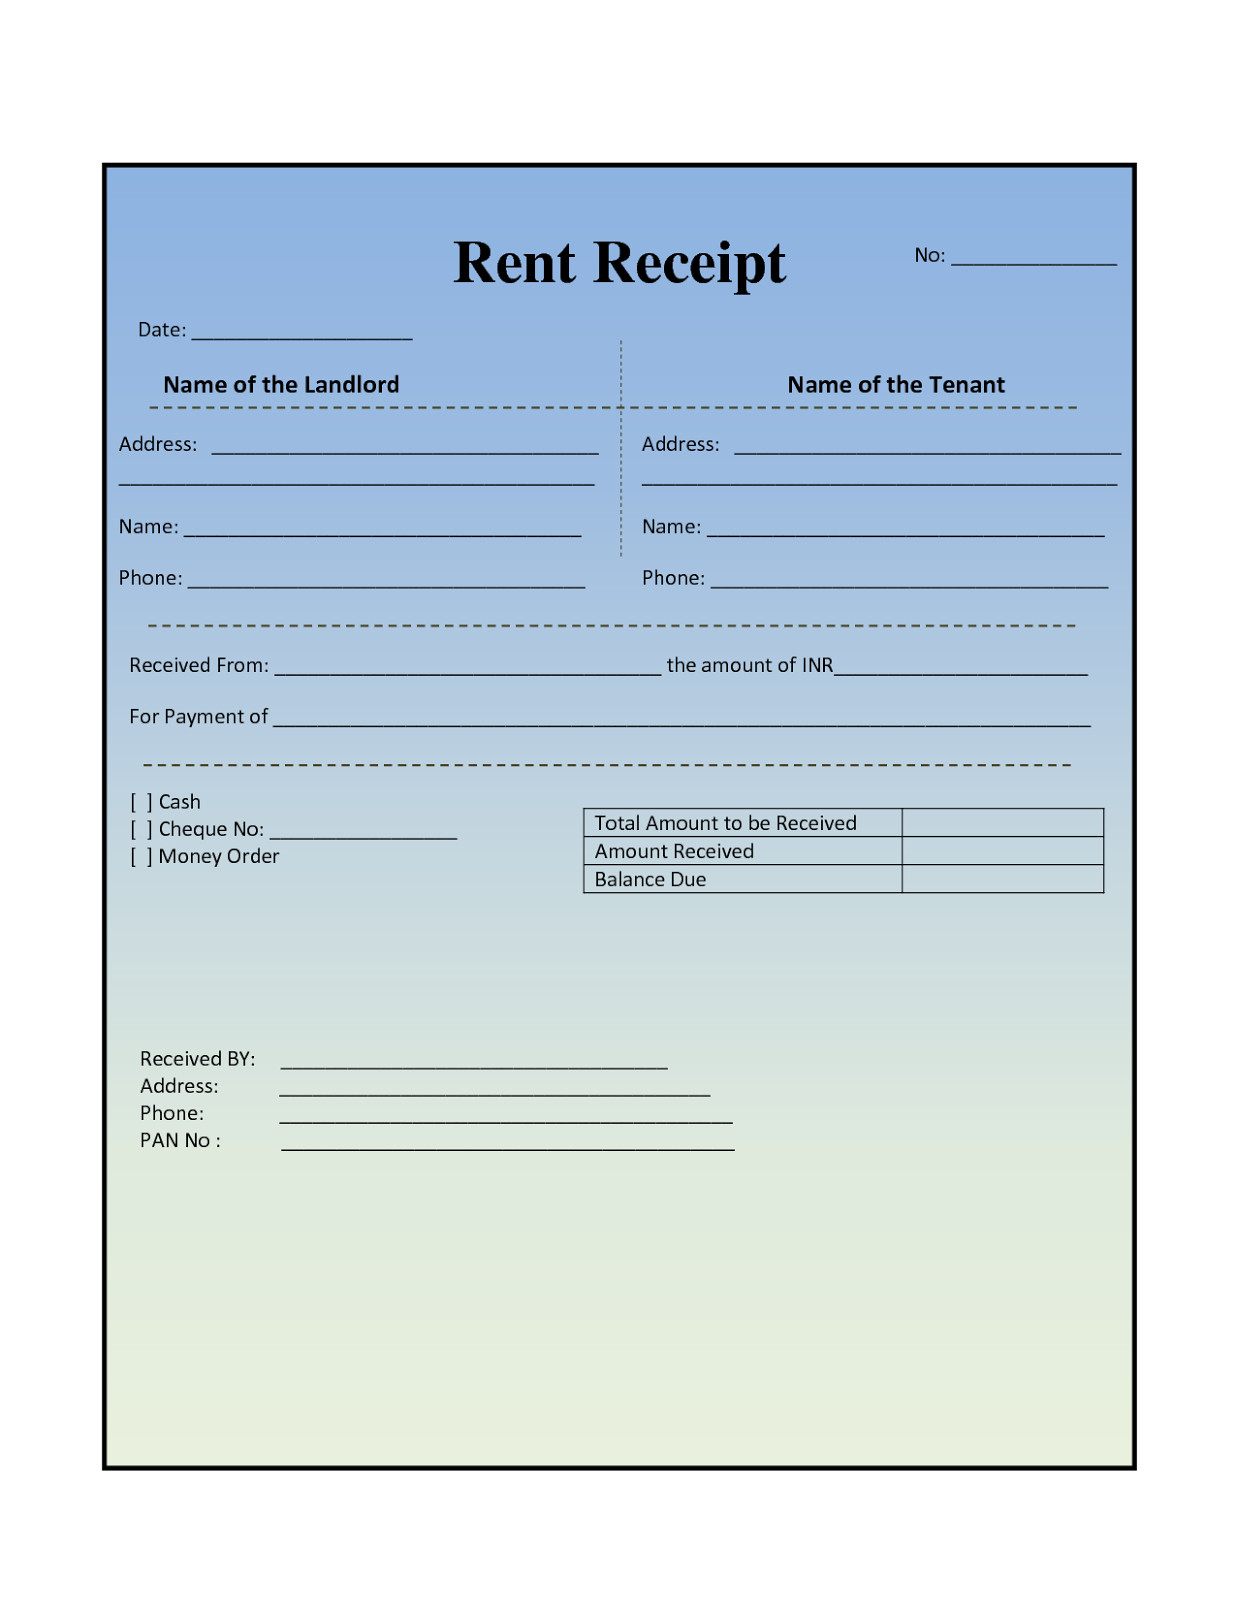 House Rent Receipt Template Excellent Rent Payment Excel Spreadsheet Free House Rental Invoice